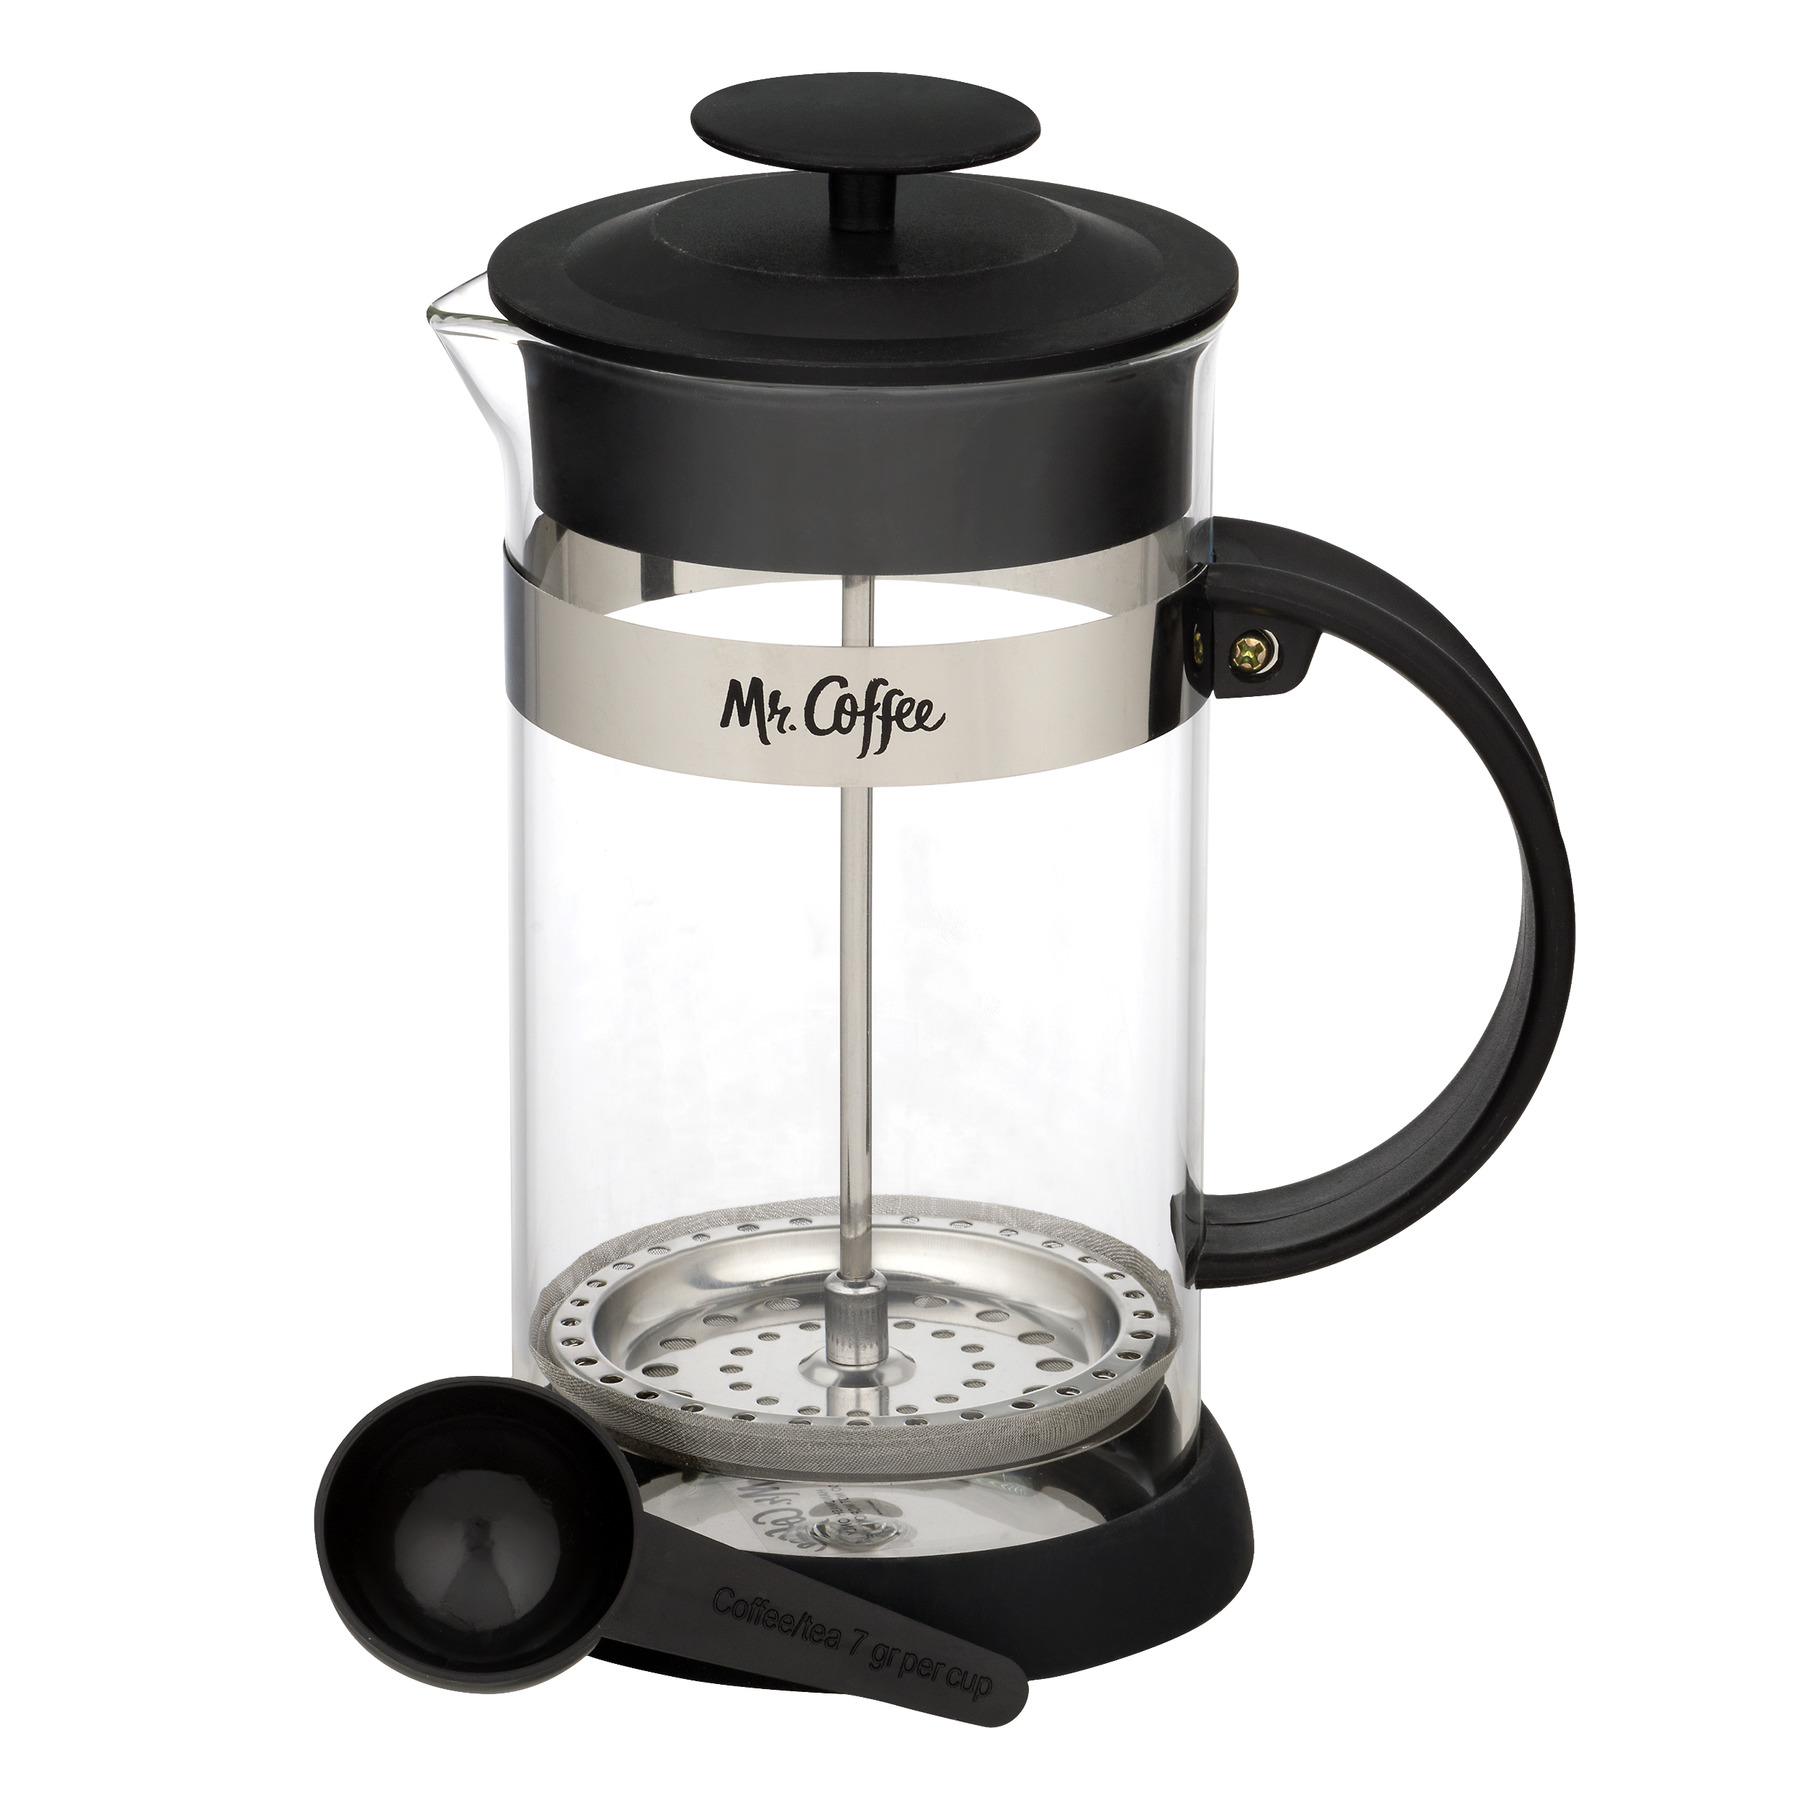 Mr. Coffee Cafe Oasis SS Coffee Press, 1.0 CT